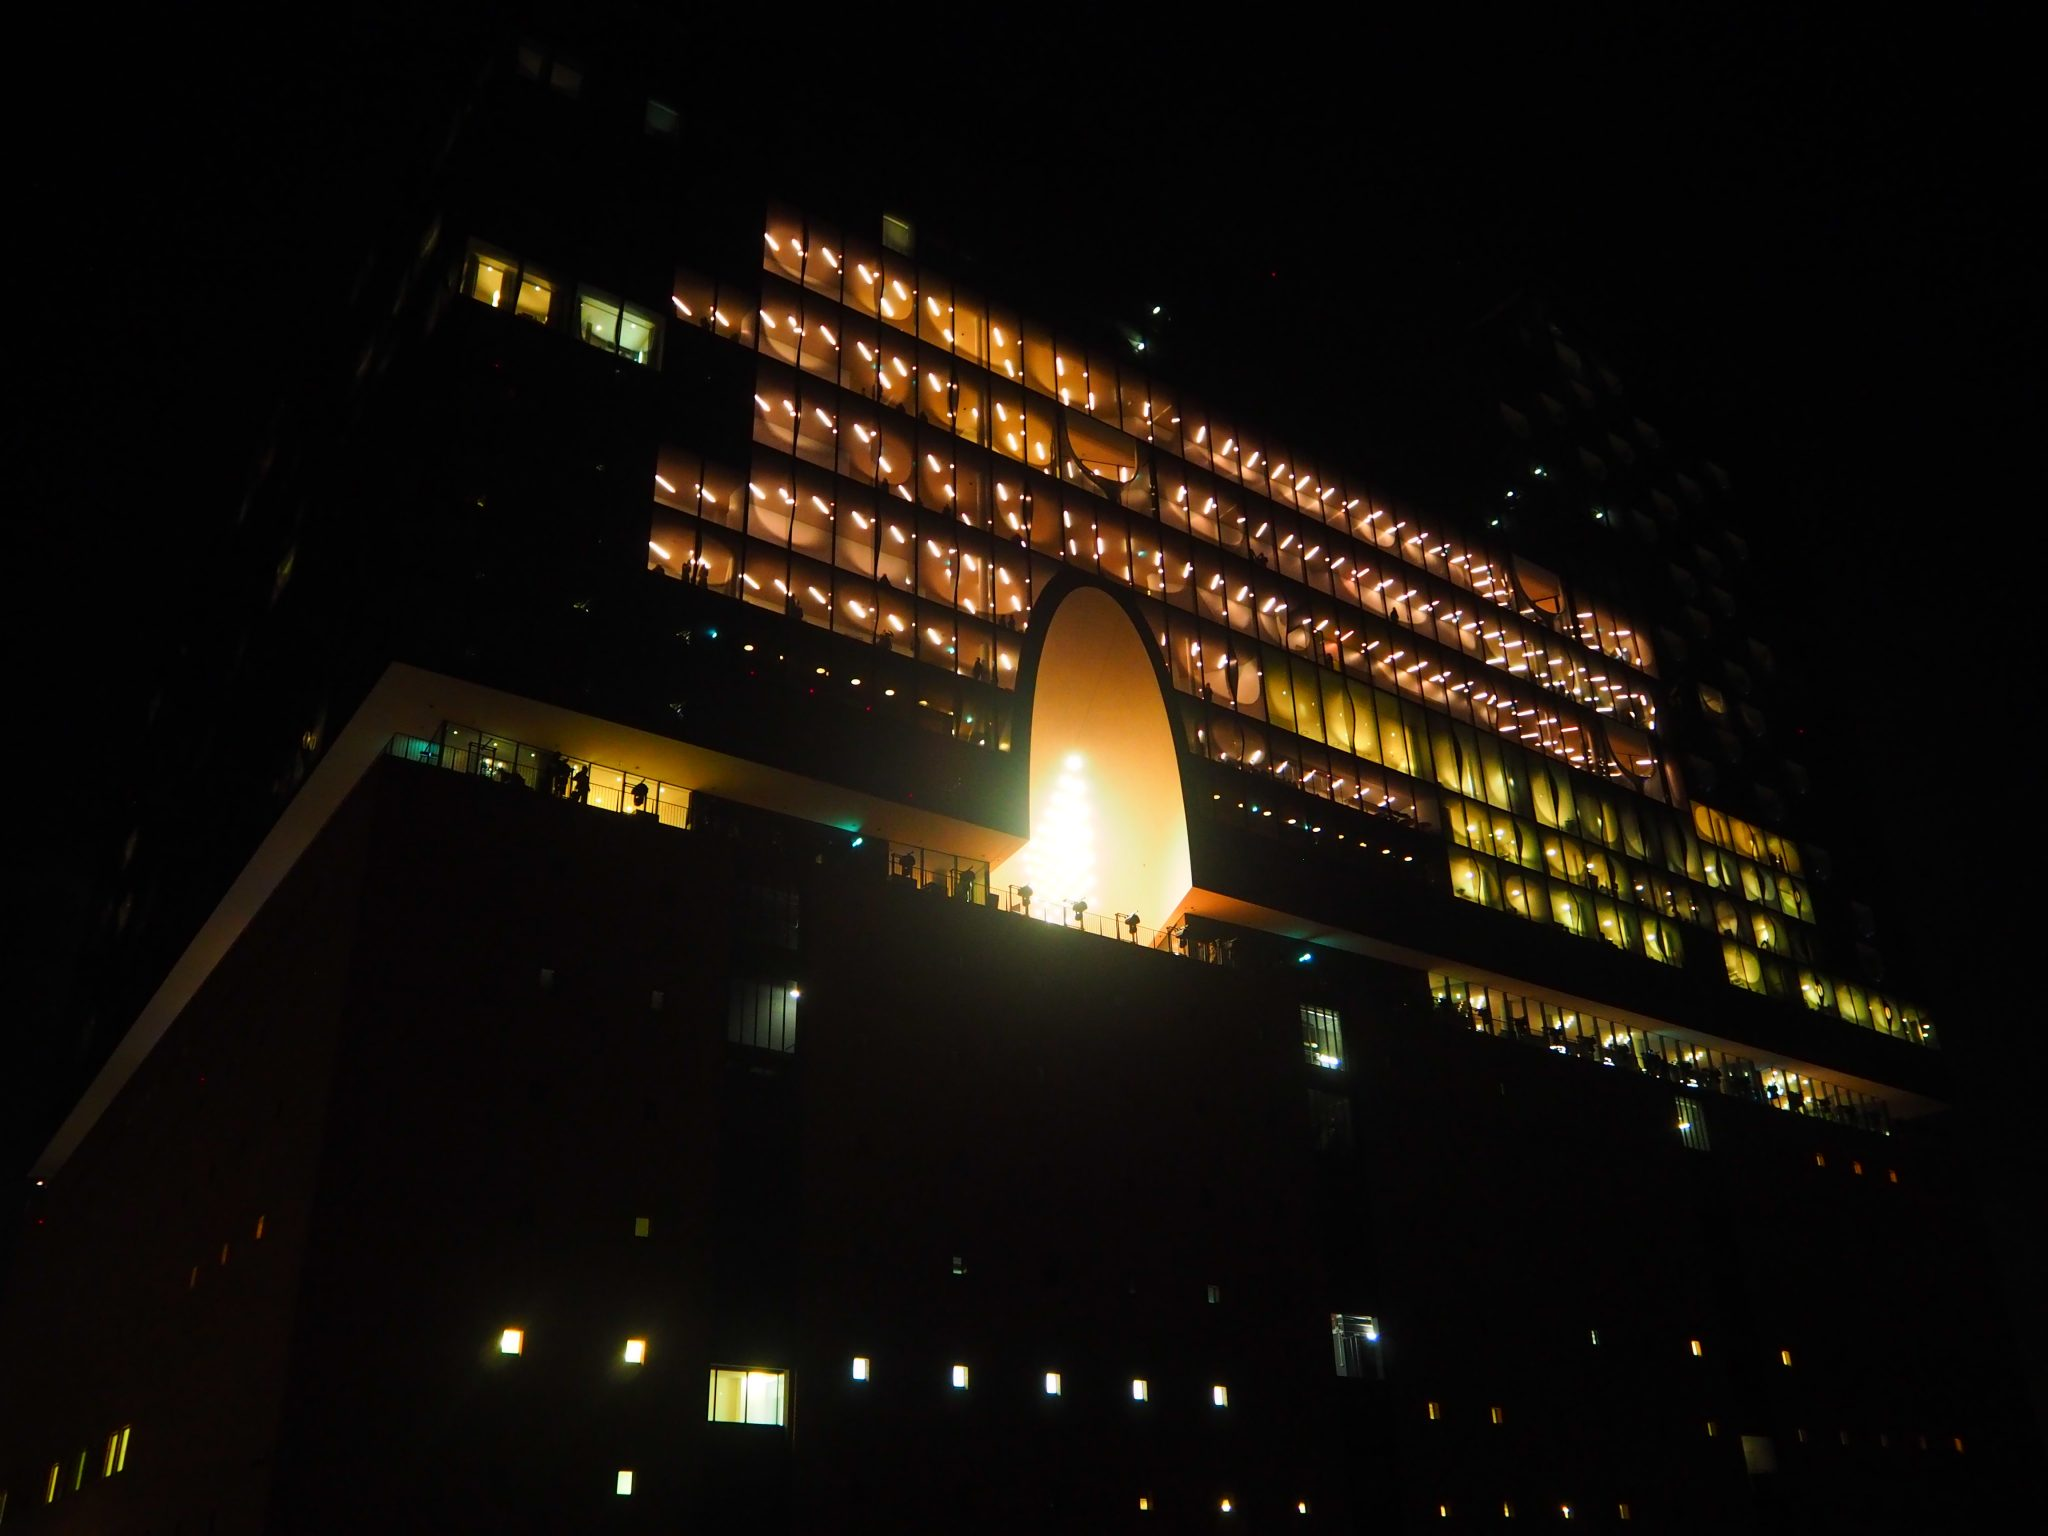 View of the Elbphilharmonie Concert Hall at night